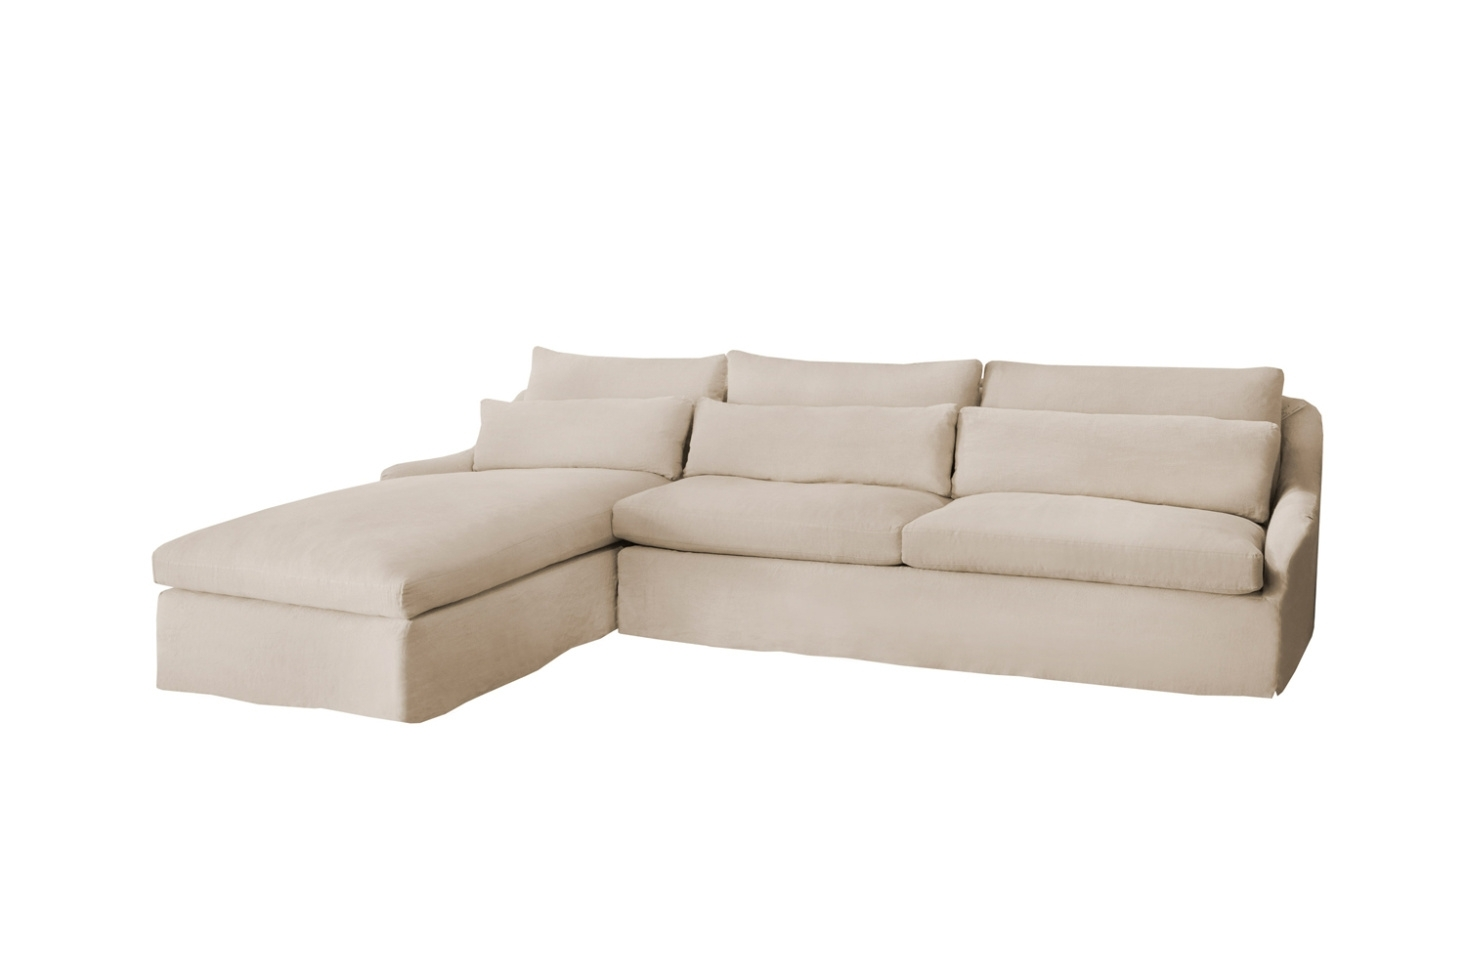 10 Easy Pieces: Sectional Chaise Sofas – Remodelista Inside Elm Grande Ii 2 Piece Sectionals (Image 6 of 25)